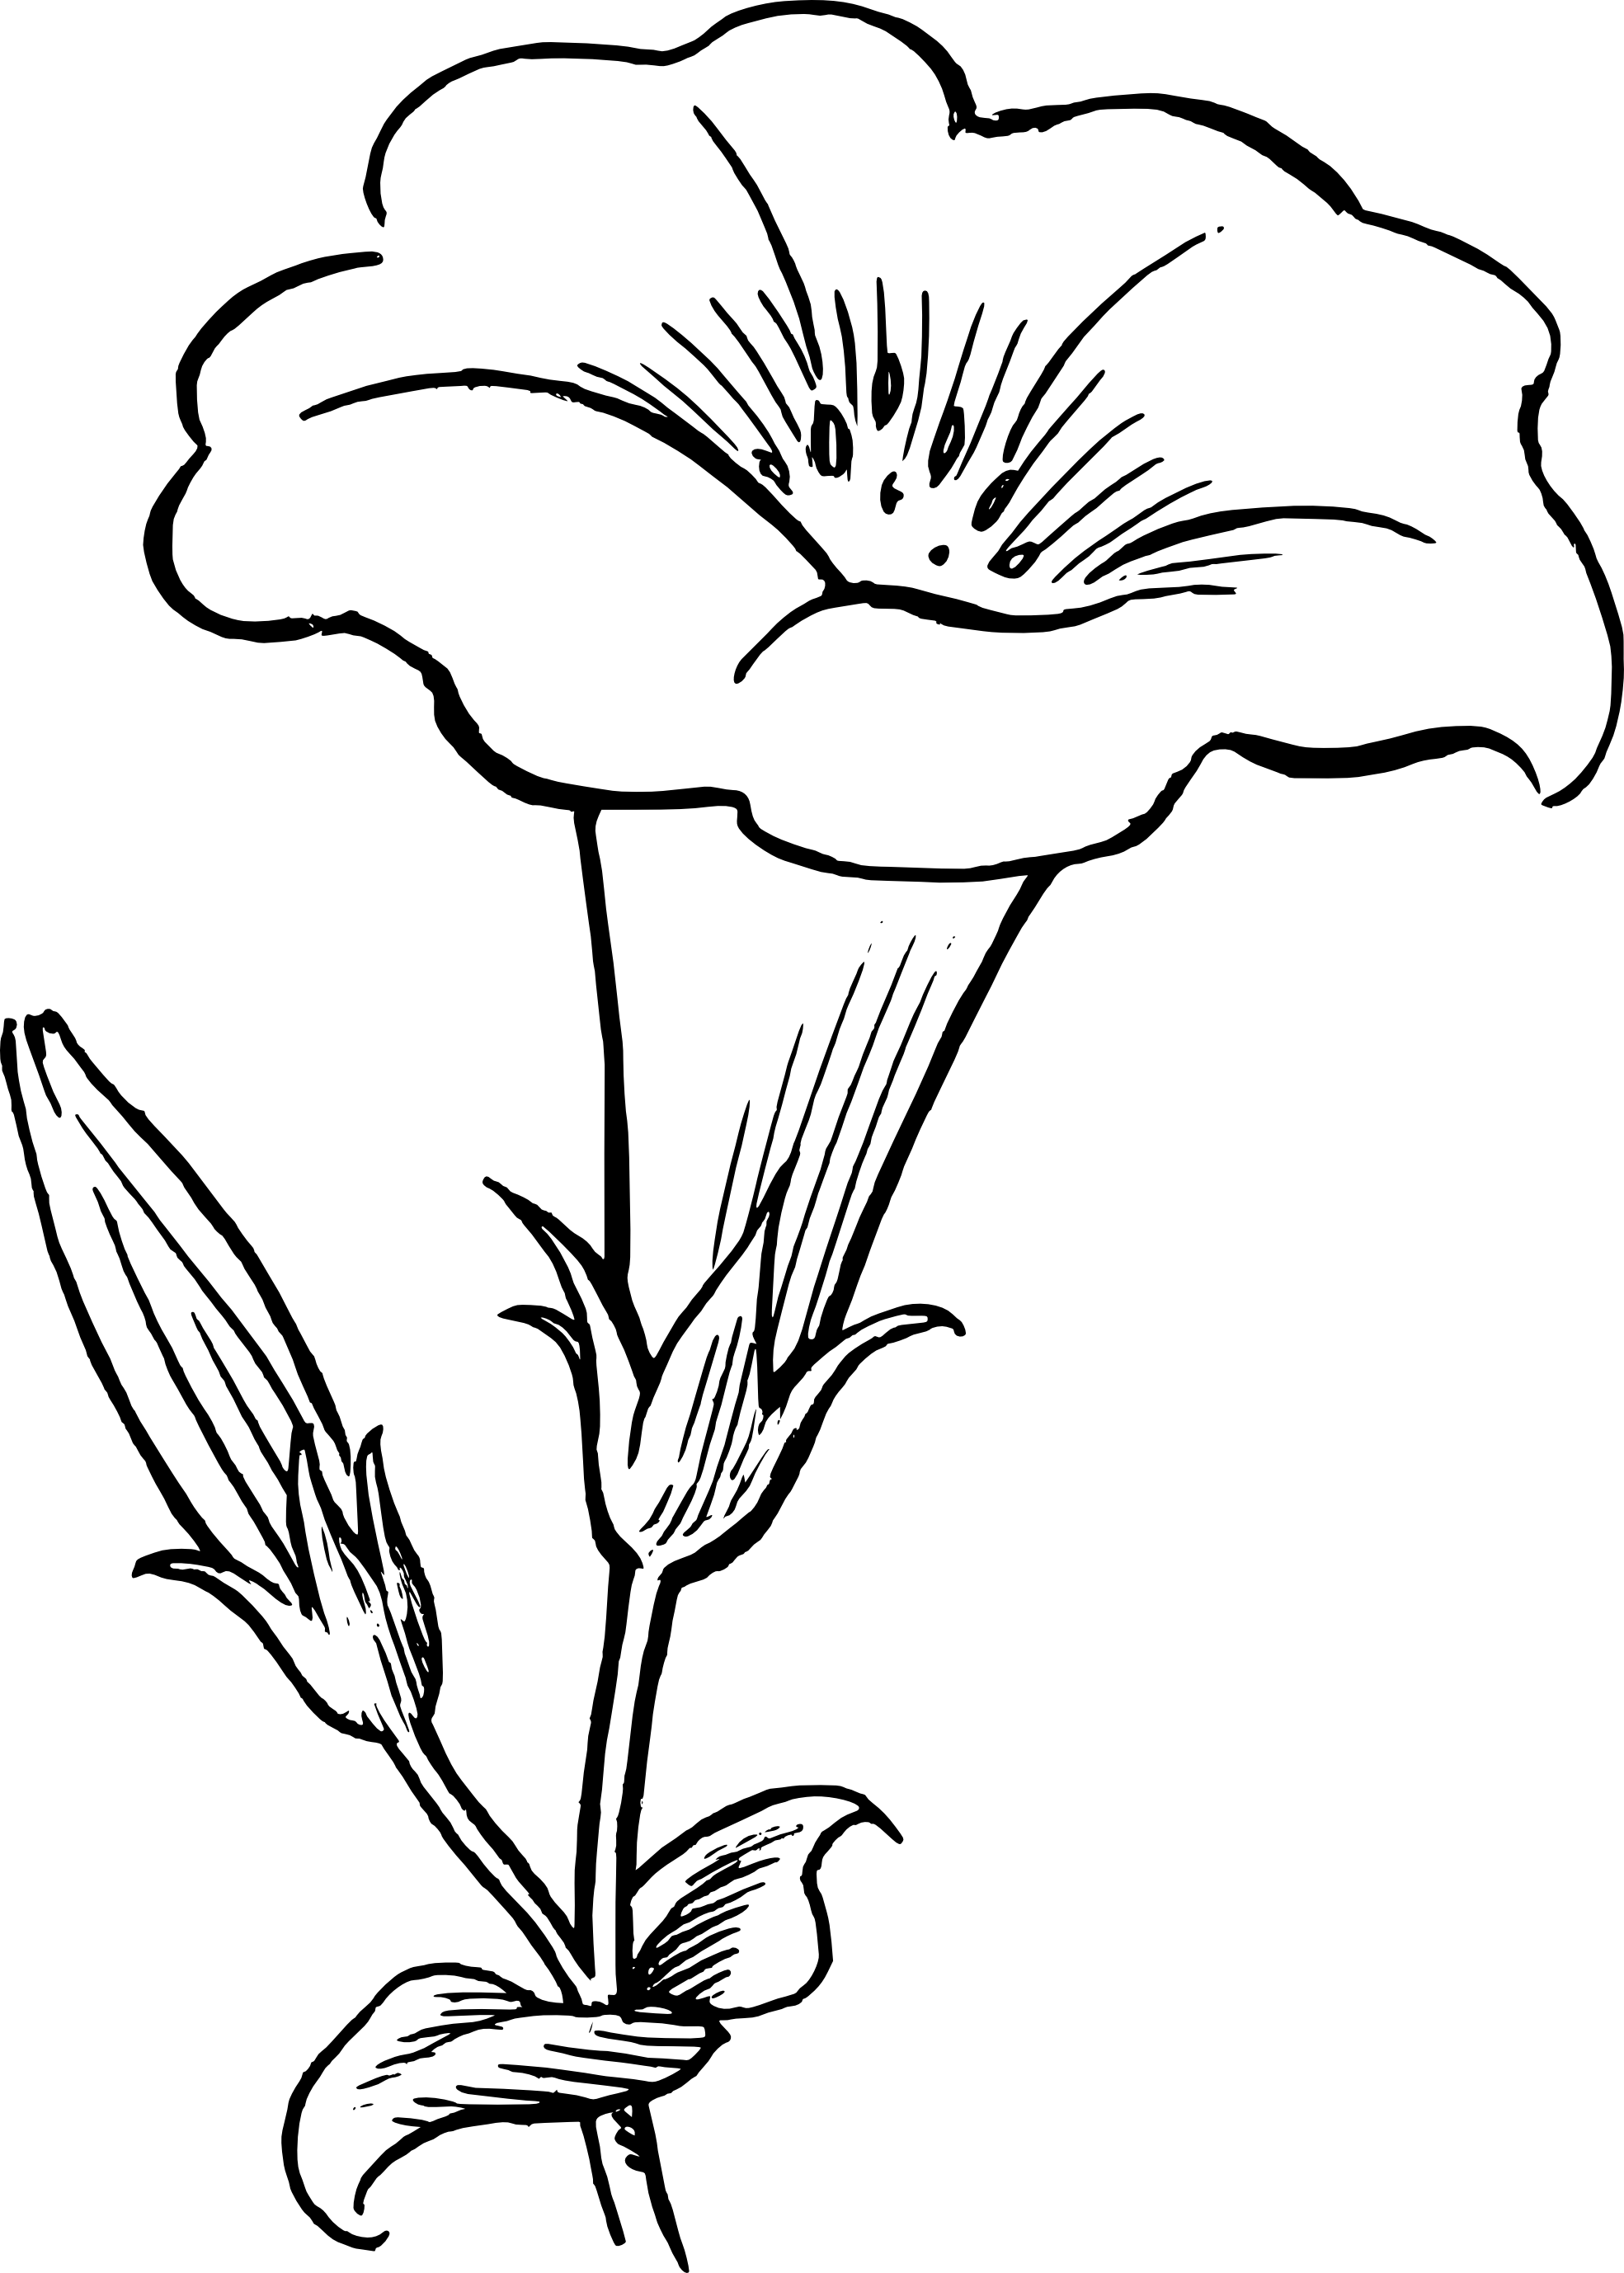 Flower Circle Line Drawing : Flowers line drawing images clipart best